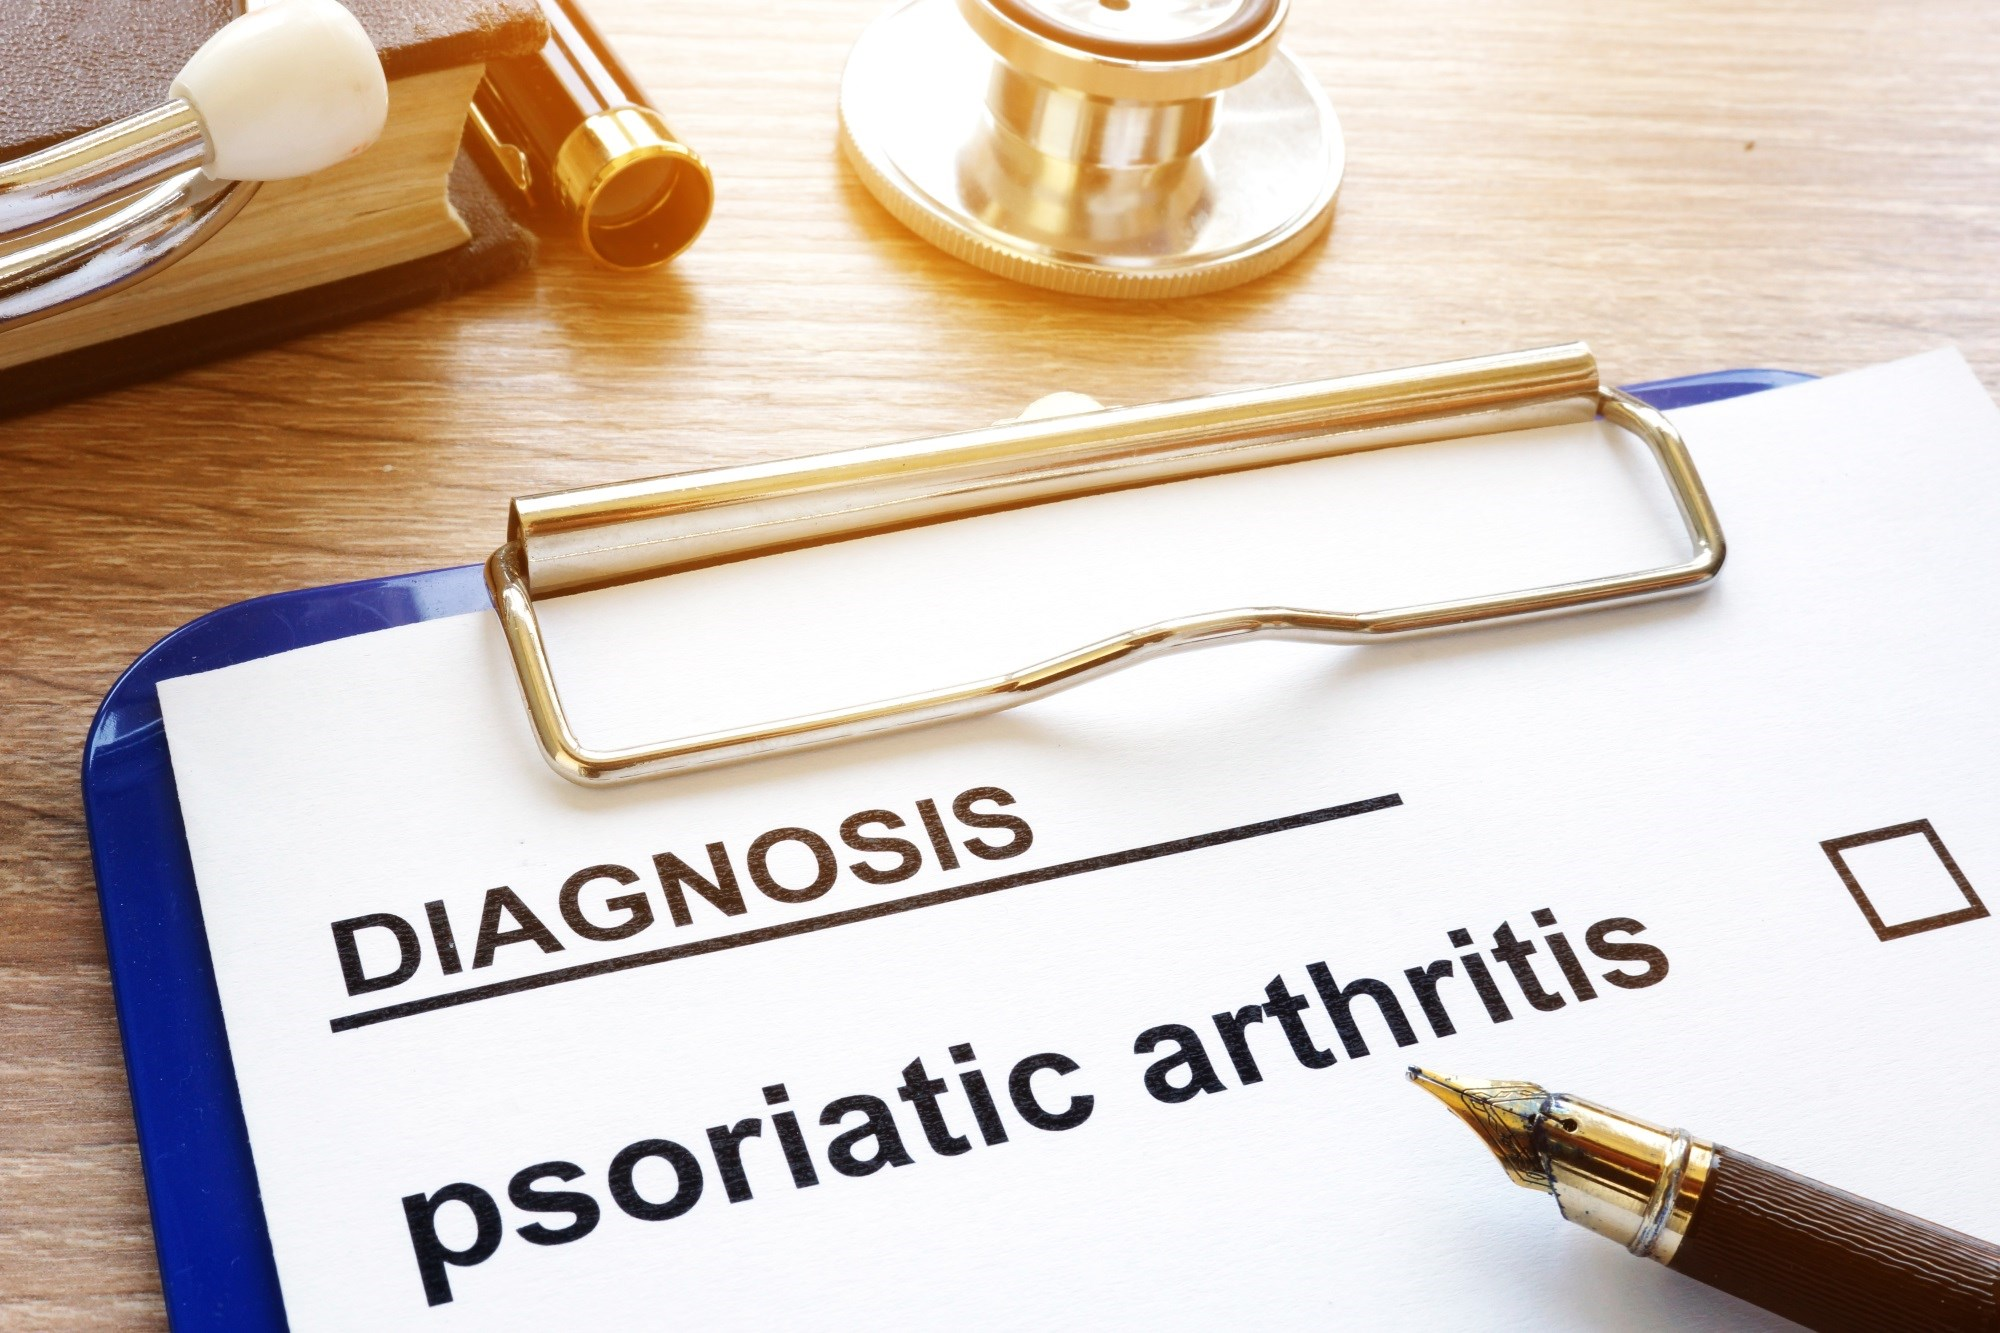 The Psoriatic Arthritis Impact of Disease questionnaire was endorsed as a core outcome measure for psoriatic arthritis-specific health-related quality of life.